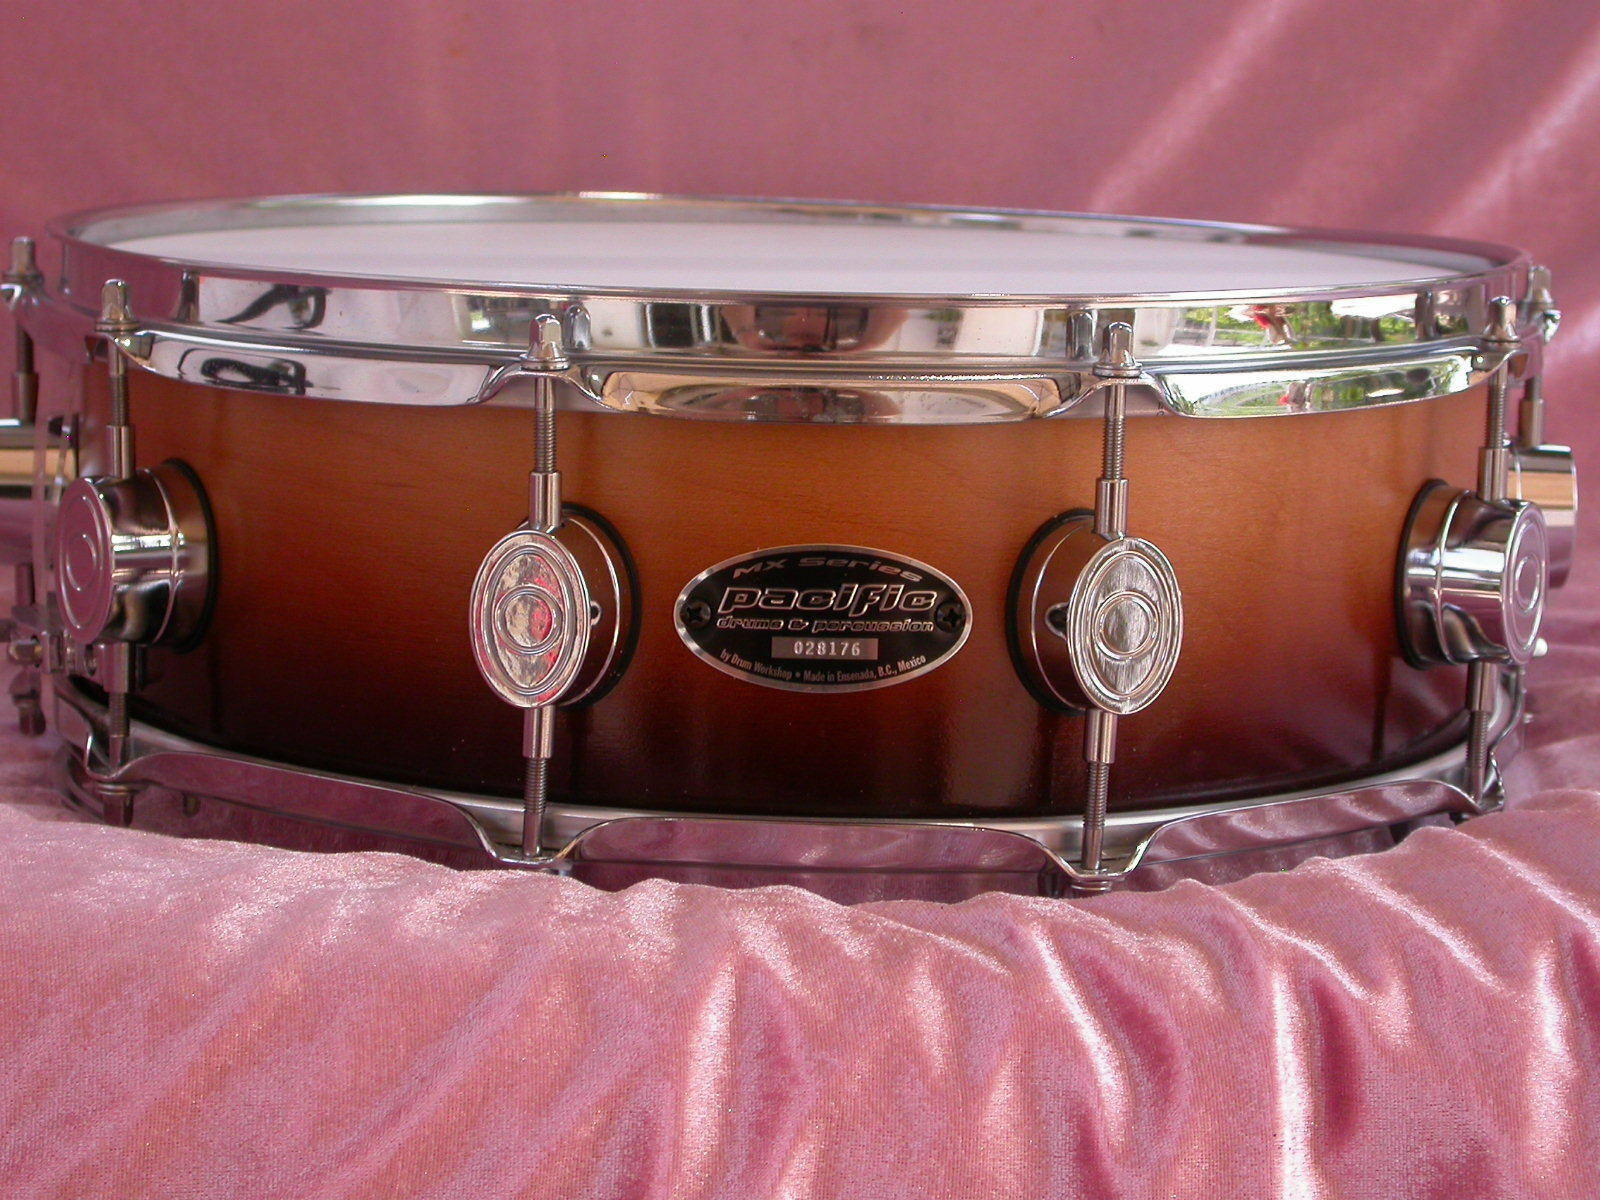 PDP PACIFIC by DW MX SERIES 14  SNARE DRUM in TOBACCO BURST FOR SET LOT  M10